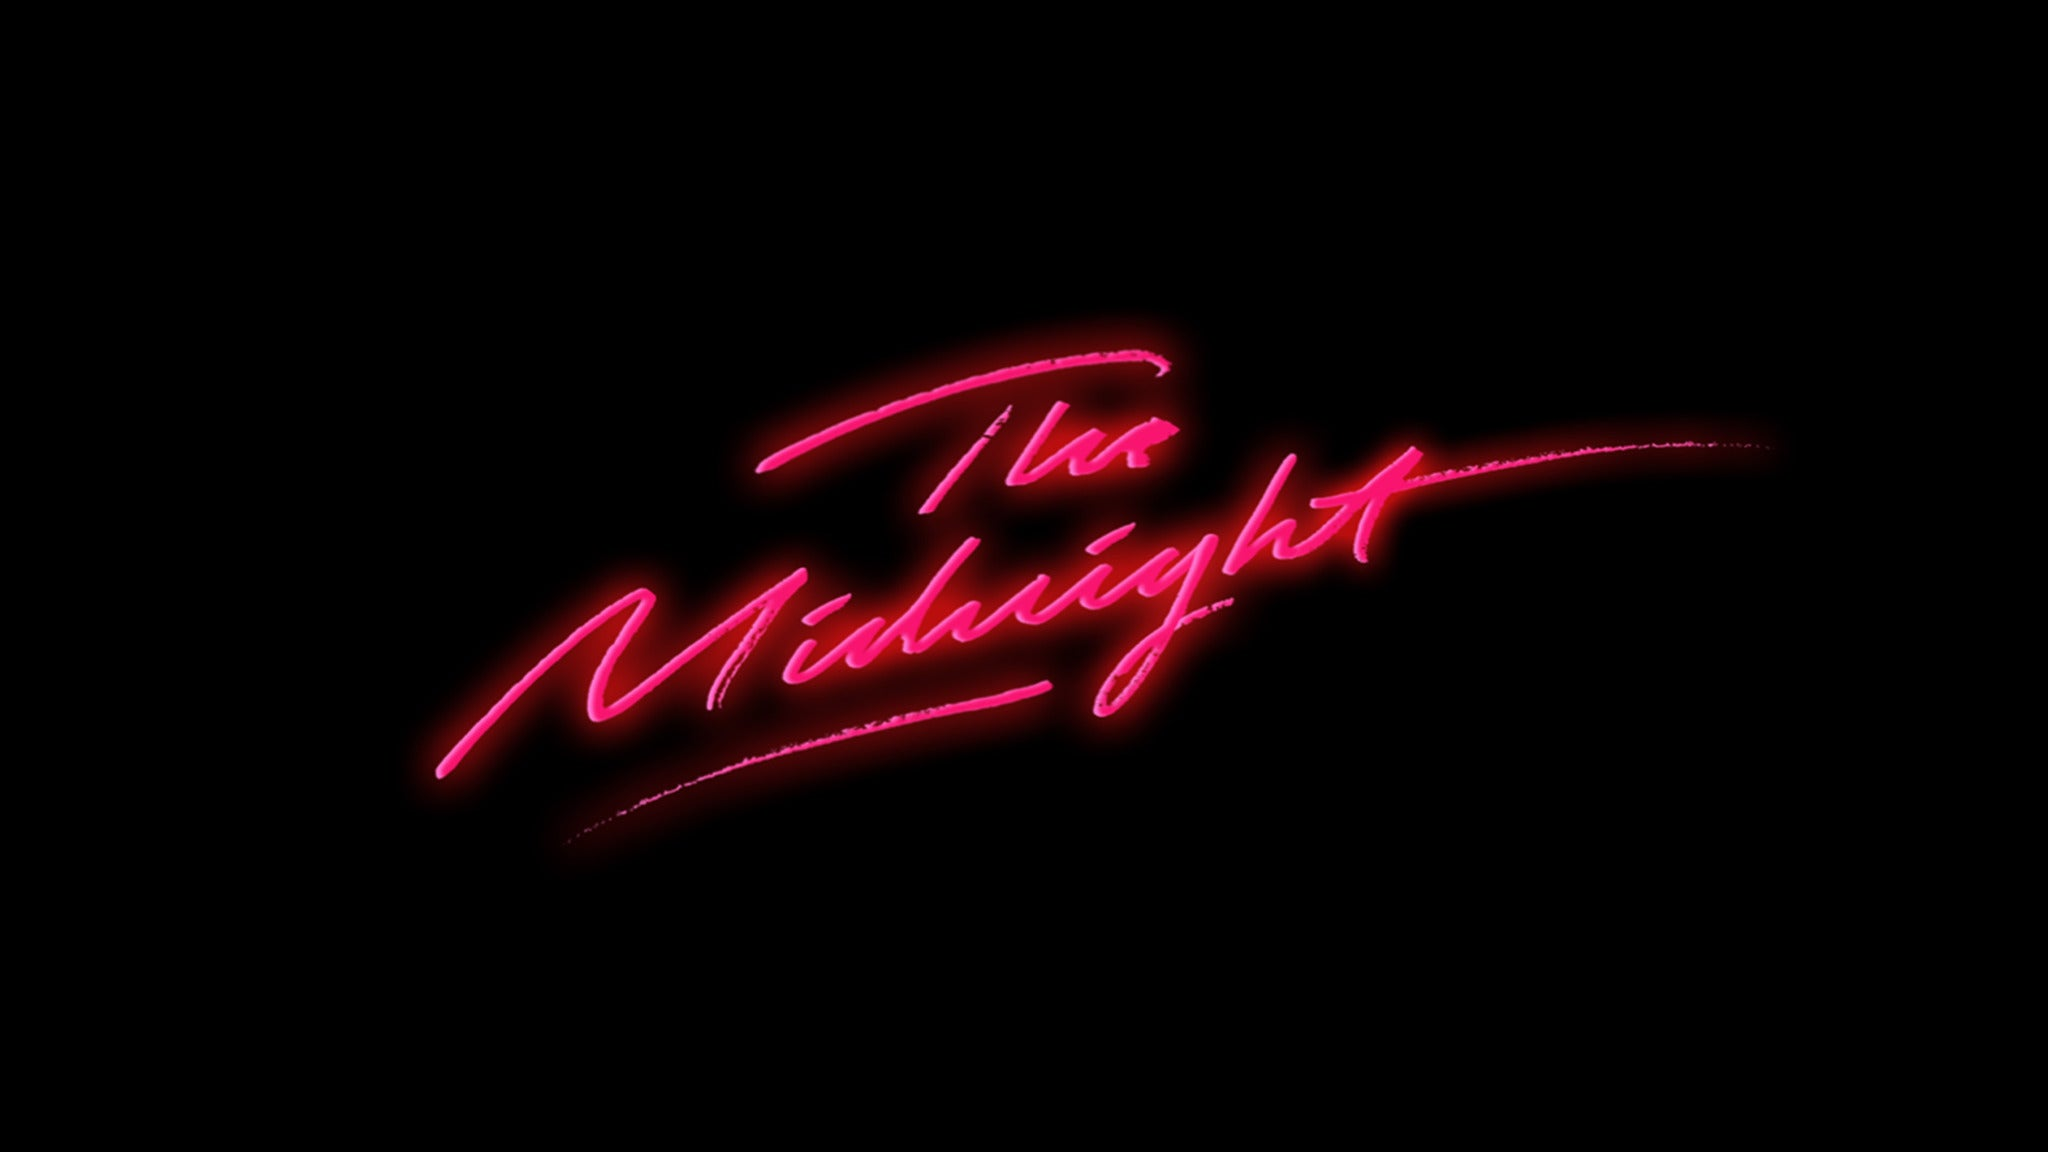 The Midnight pre-sale password for show tickets in Sacramento, CA (Ace of Spades)